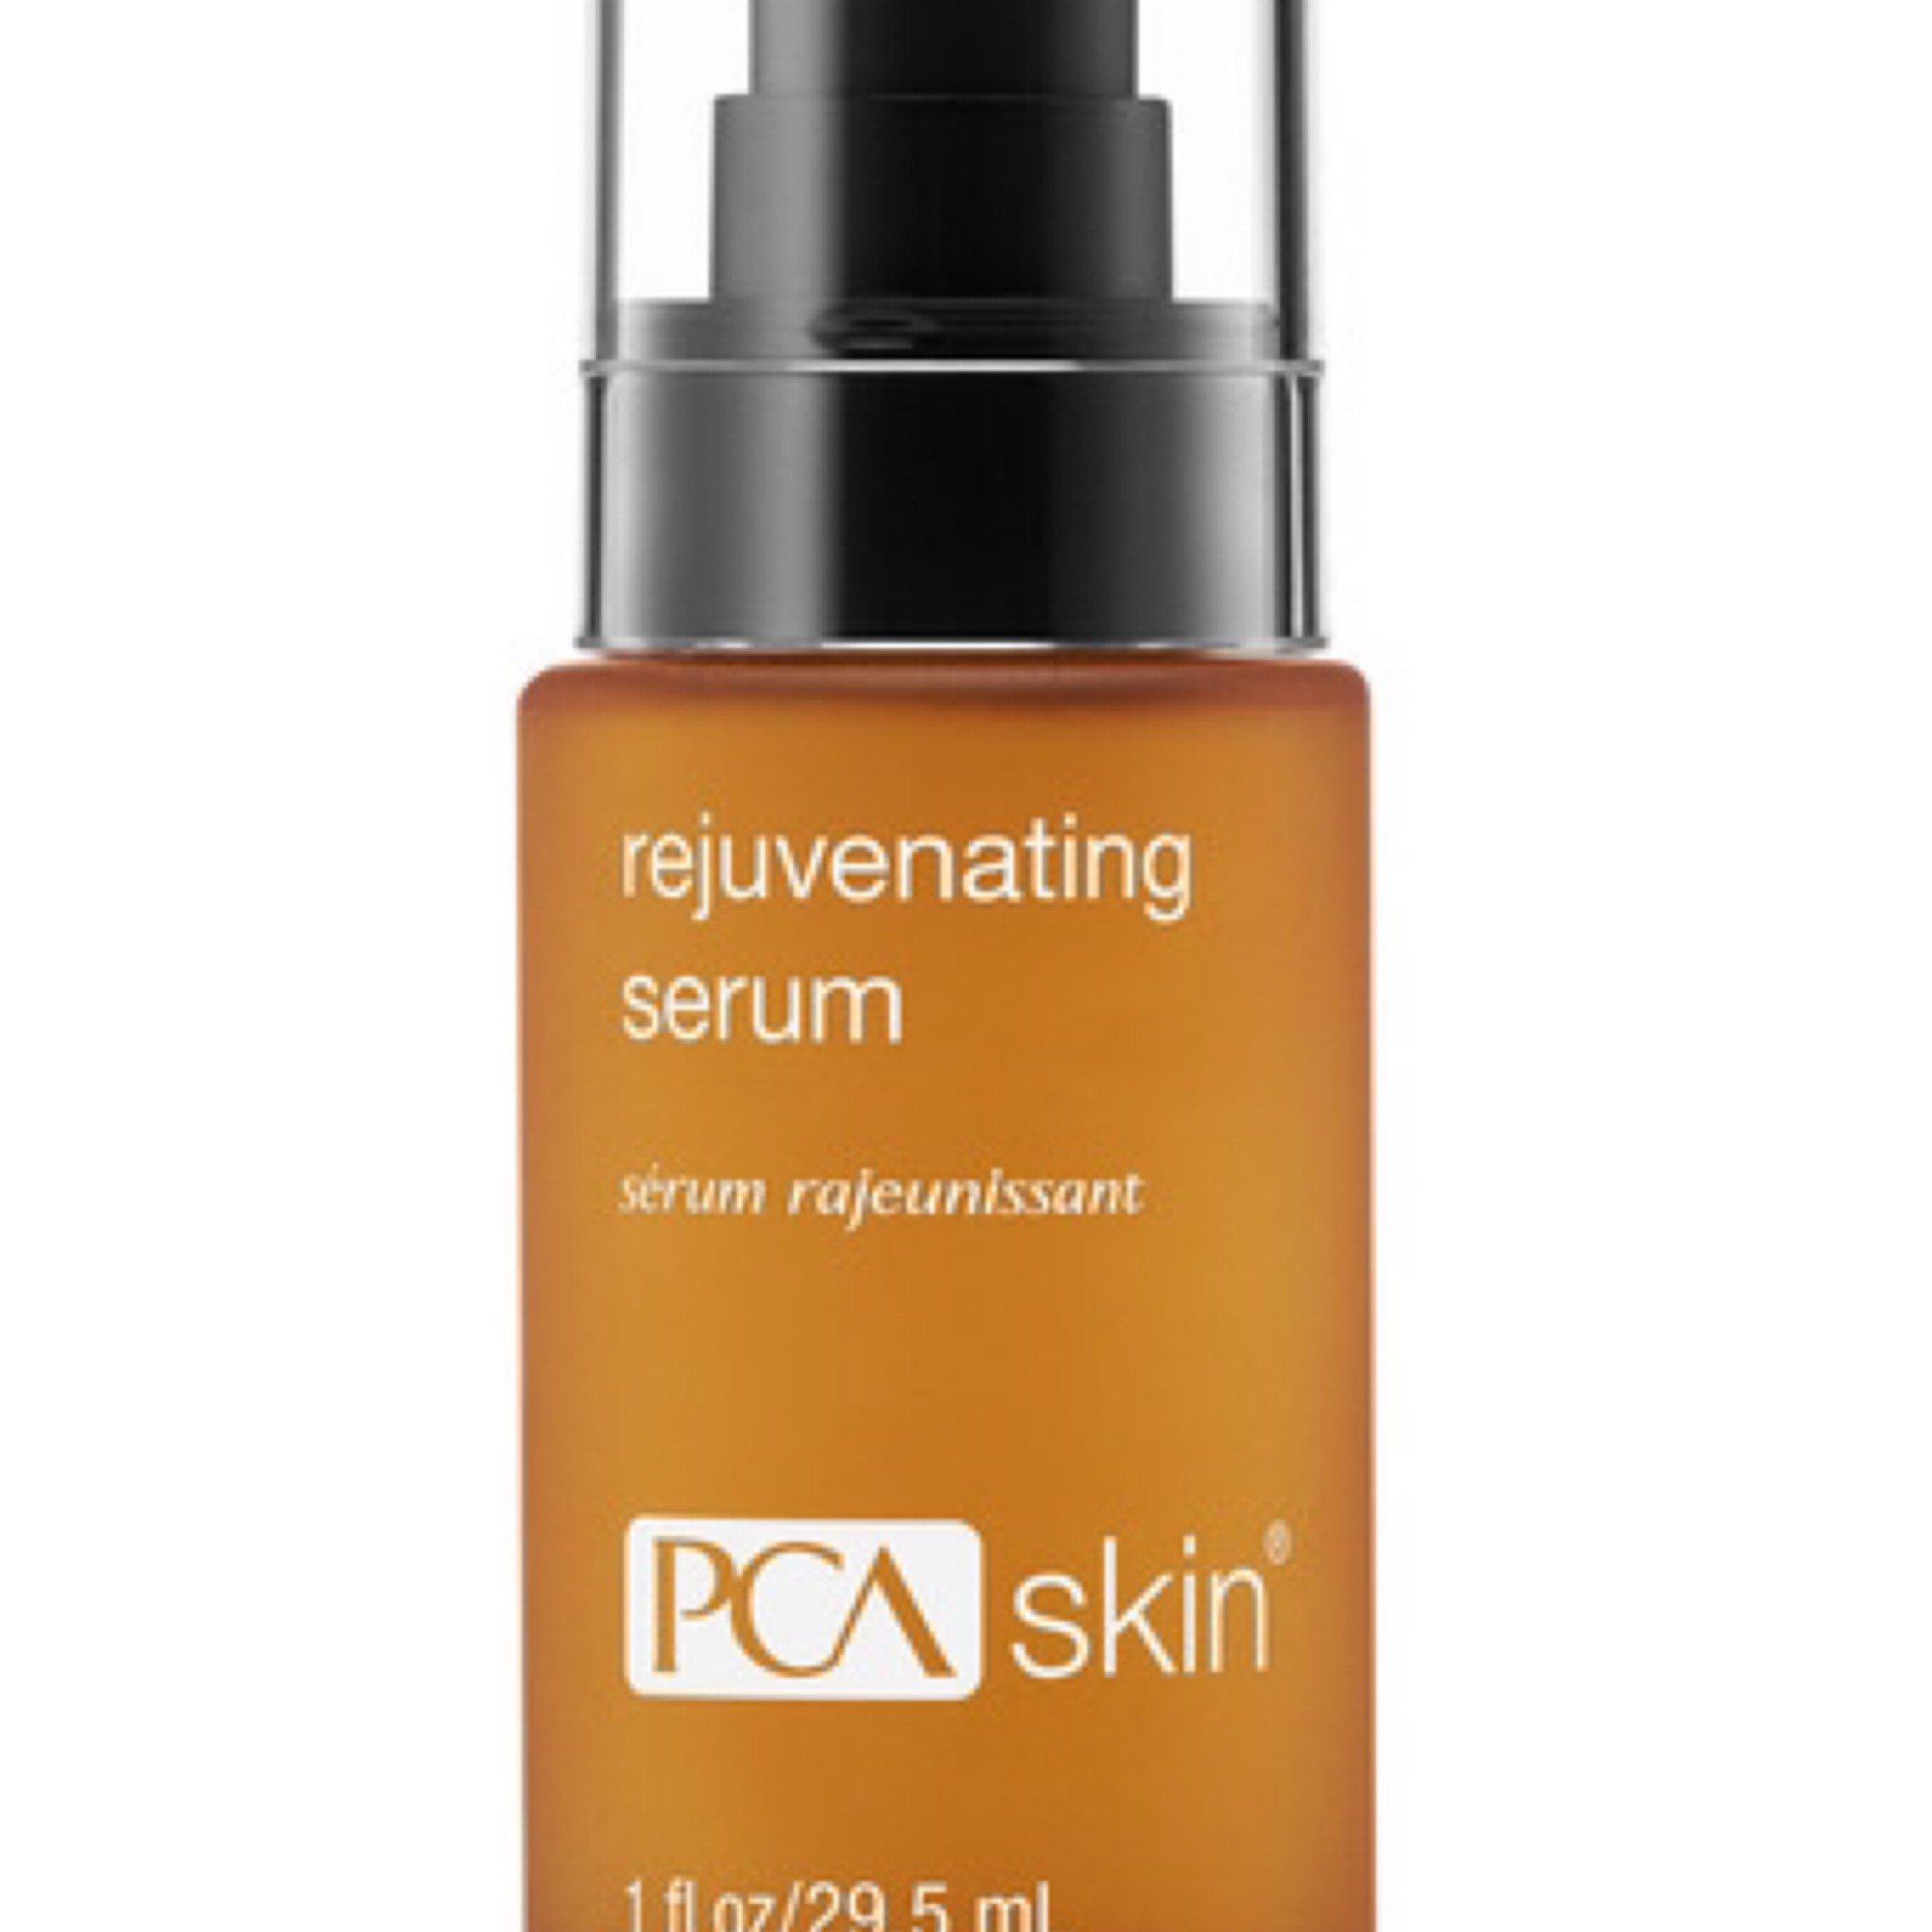 Rejuvenating Plant Stem Cell Serum